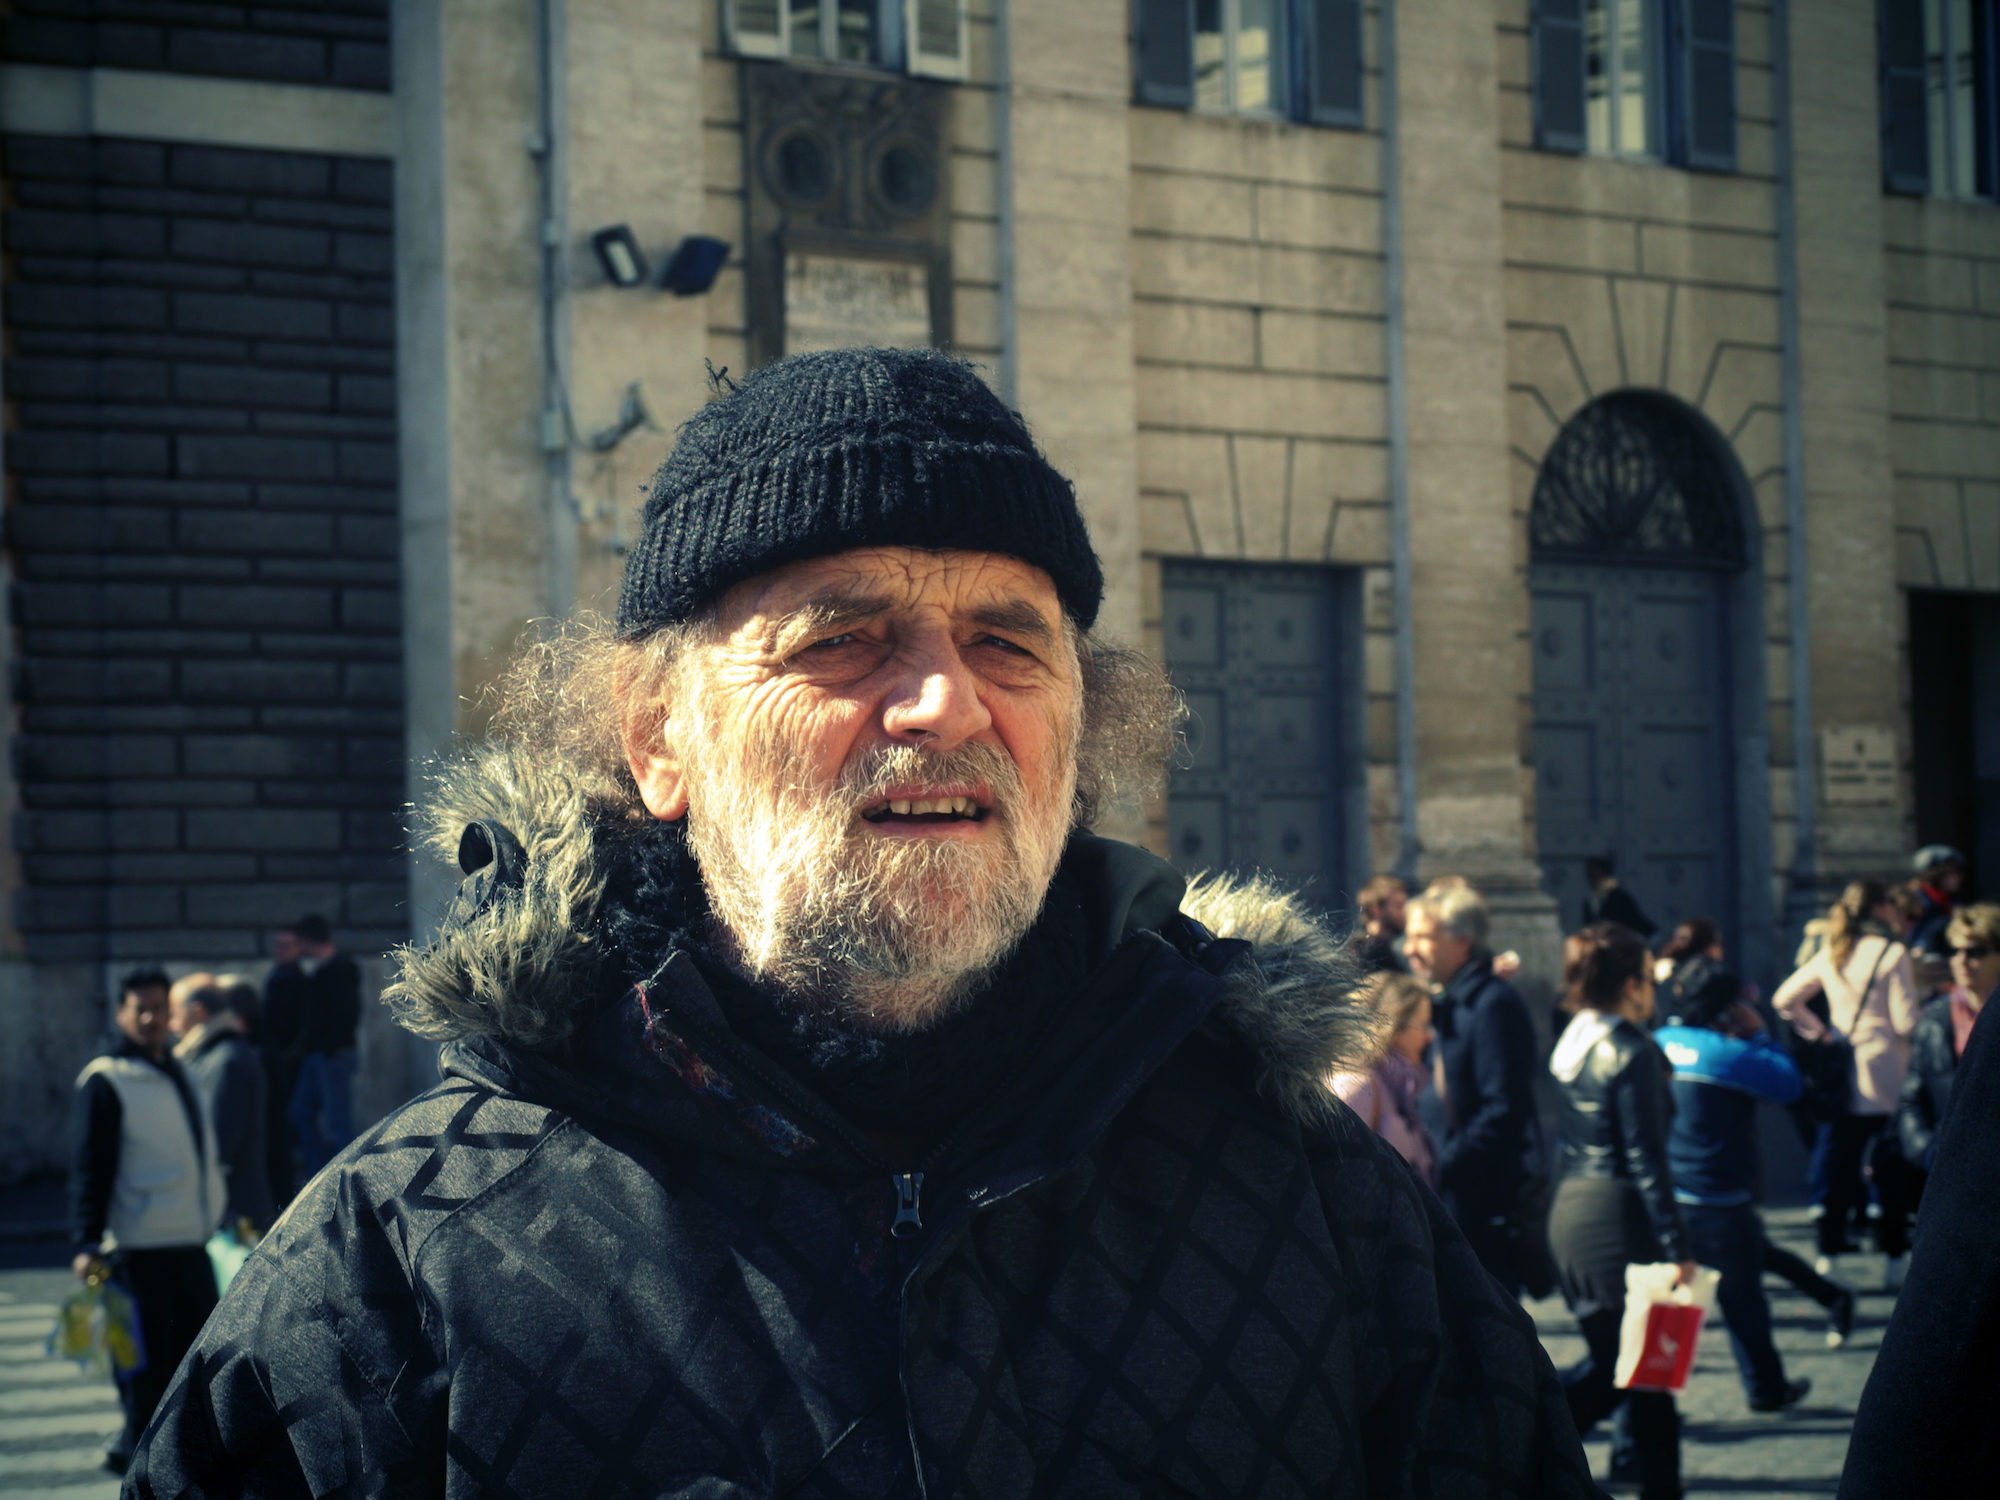 """Like an Old Bill Murray"" taken at Piazza del Popolo in Rome, Italy. Travel photography by Geena Matuson @geenamatuson #thegirlmirage."